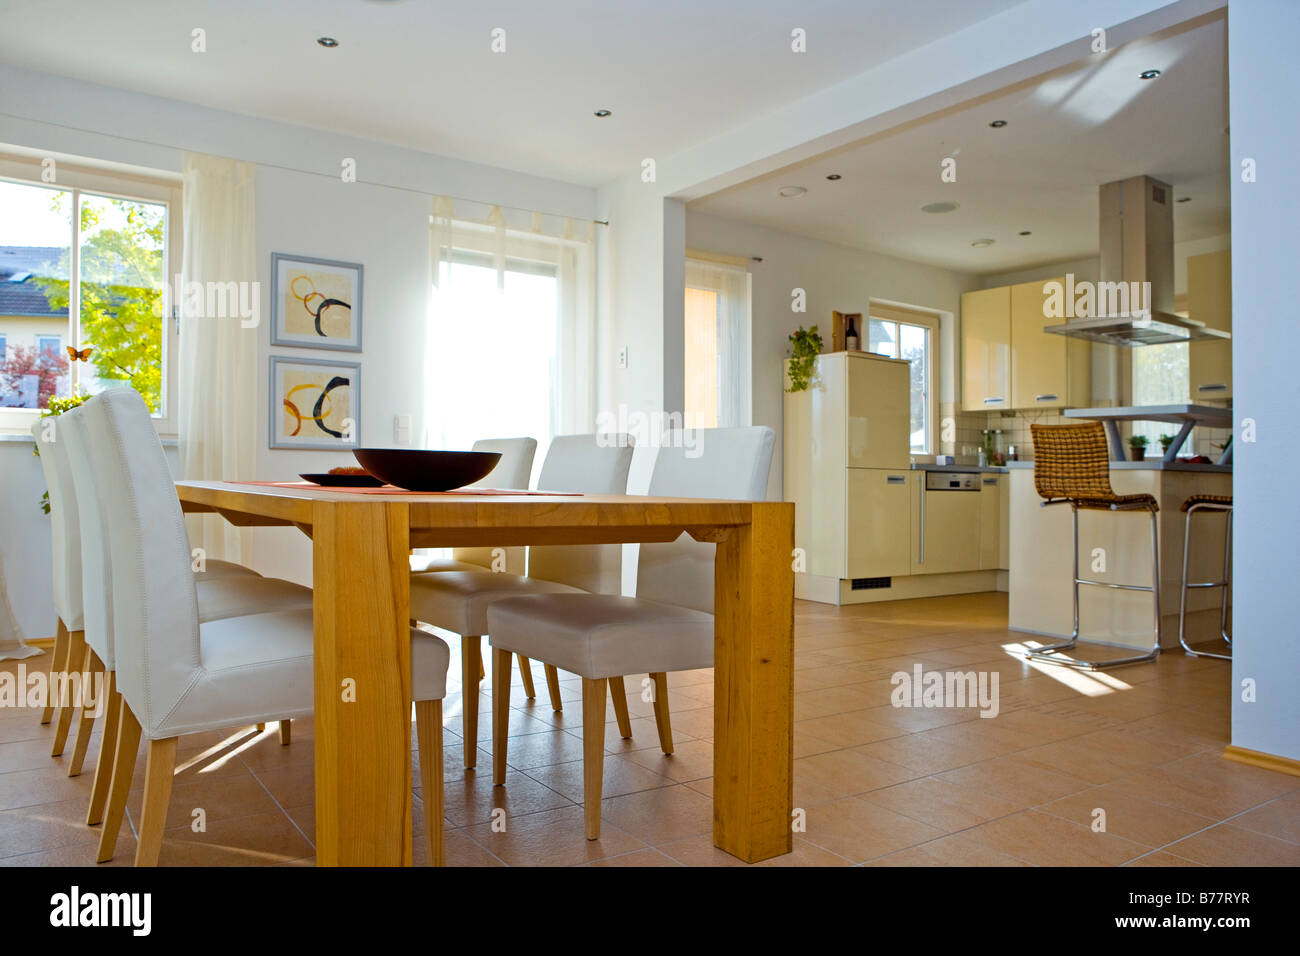 Modernes Esszimmer Modernes Esszimmer Modern Dining Room Stock Photo 21685435 Alamy